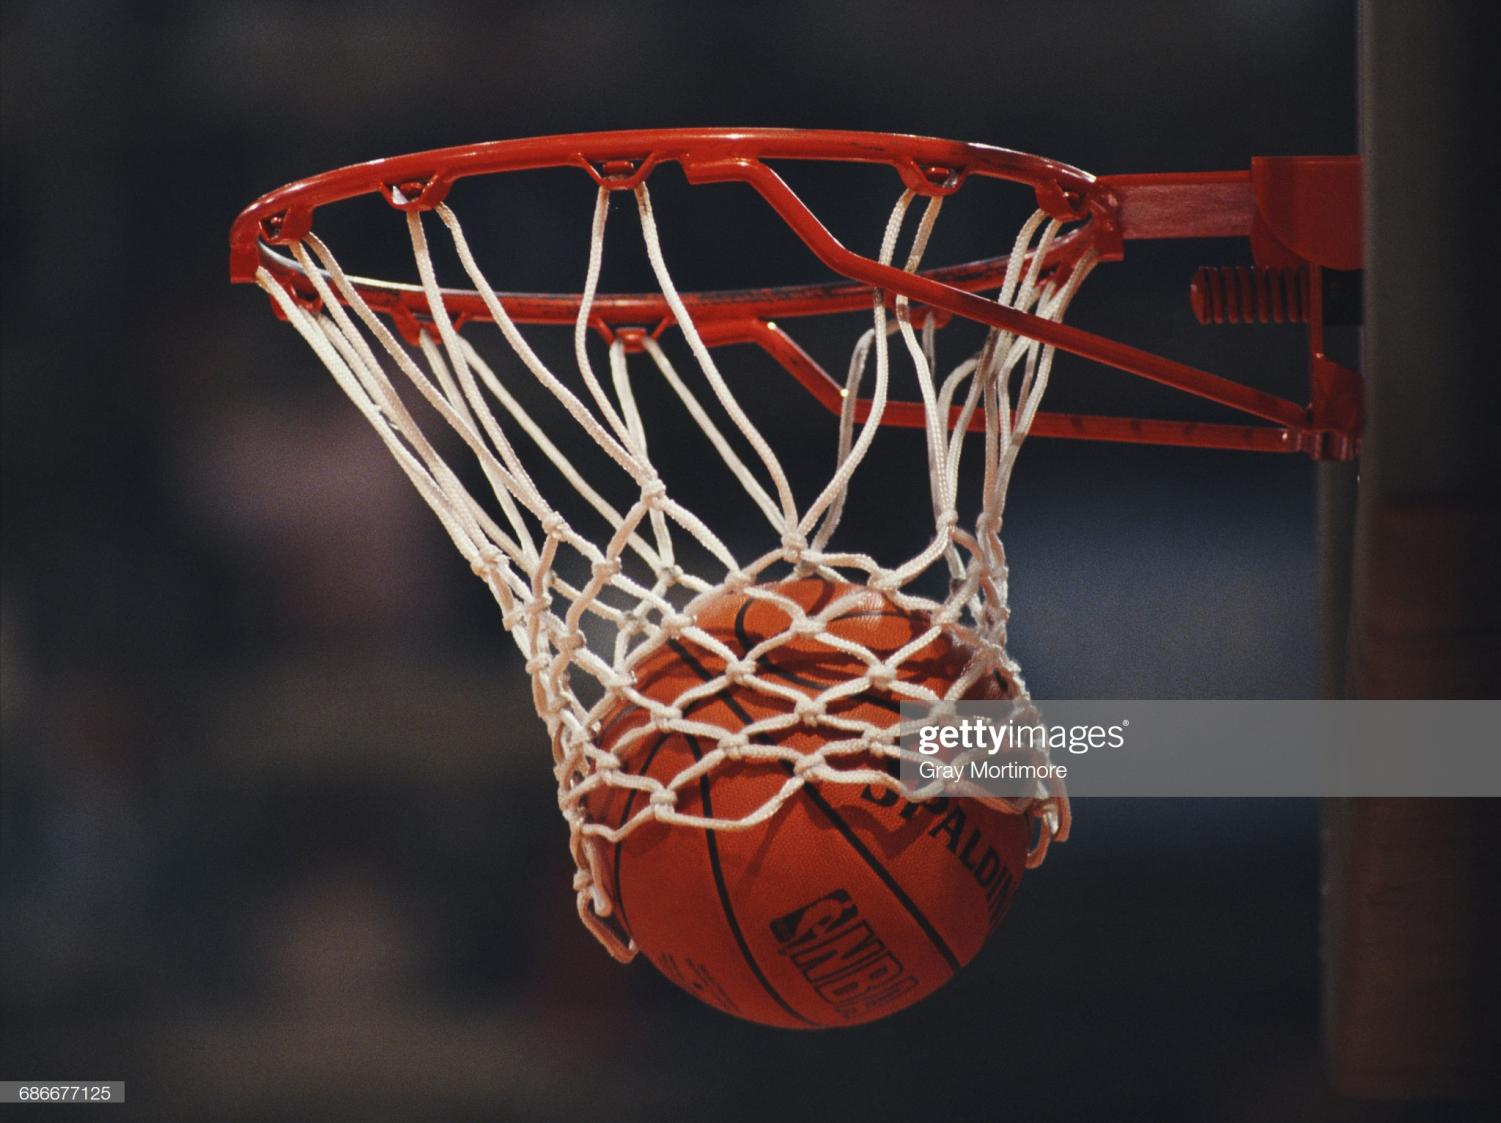 Generic view of a Spalding NBA basketball dropping into the hoop during the FIBA European Basketball Championship on 25 June 1989 at the Dom Sportova in Zagreb, Yugoslavia.